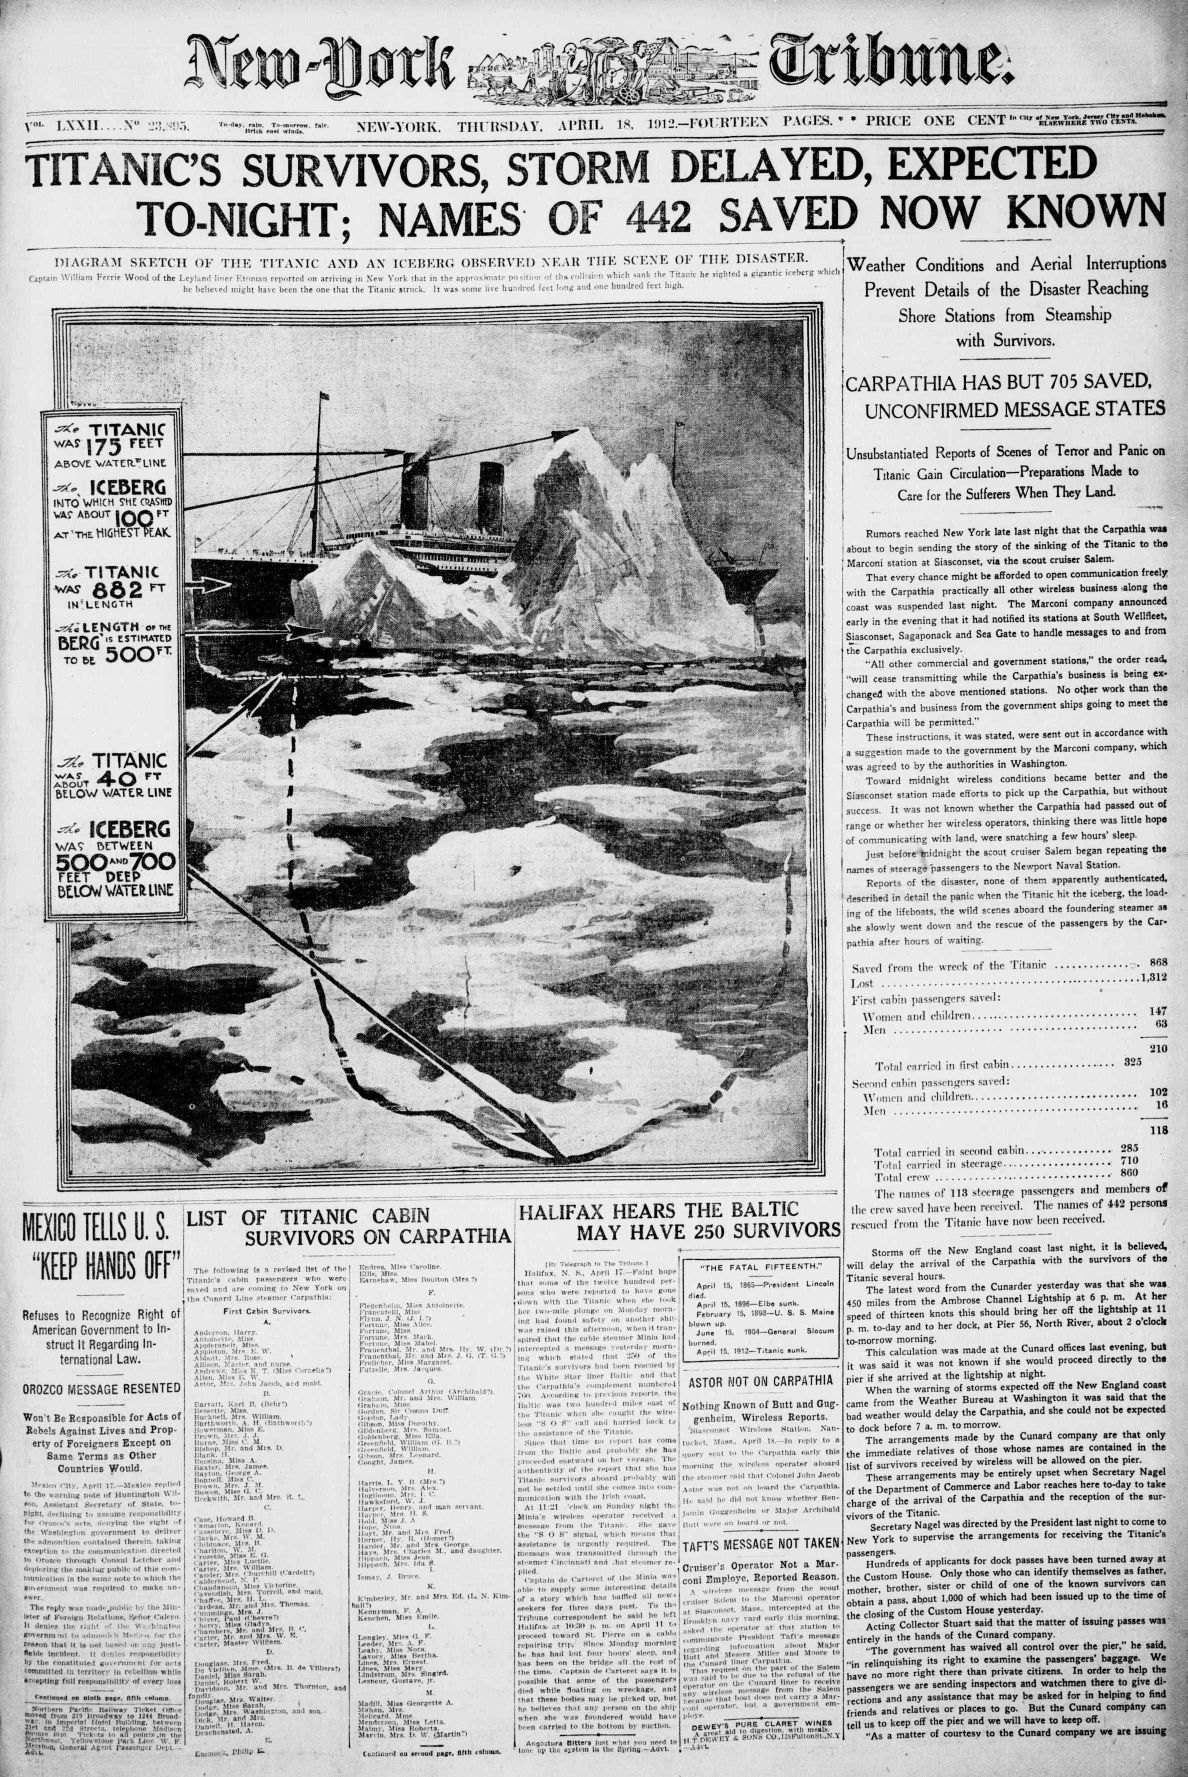 Titanic Newspaper Front Page 1912-04-18 New-York Tribune, April 18, 1912, Page 1